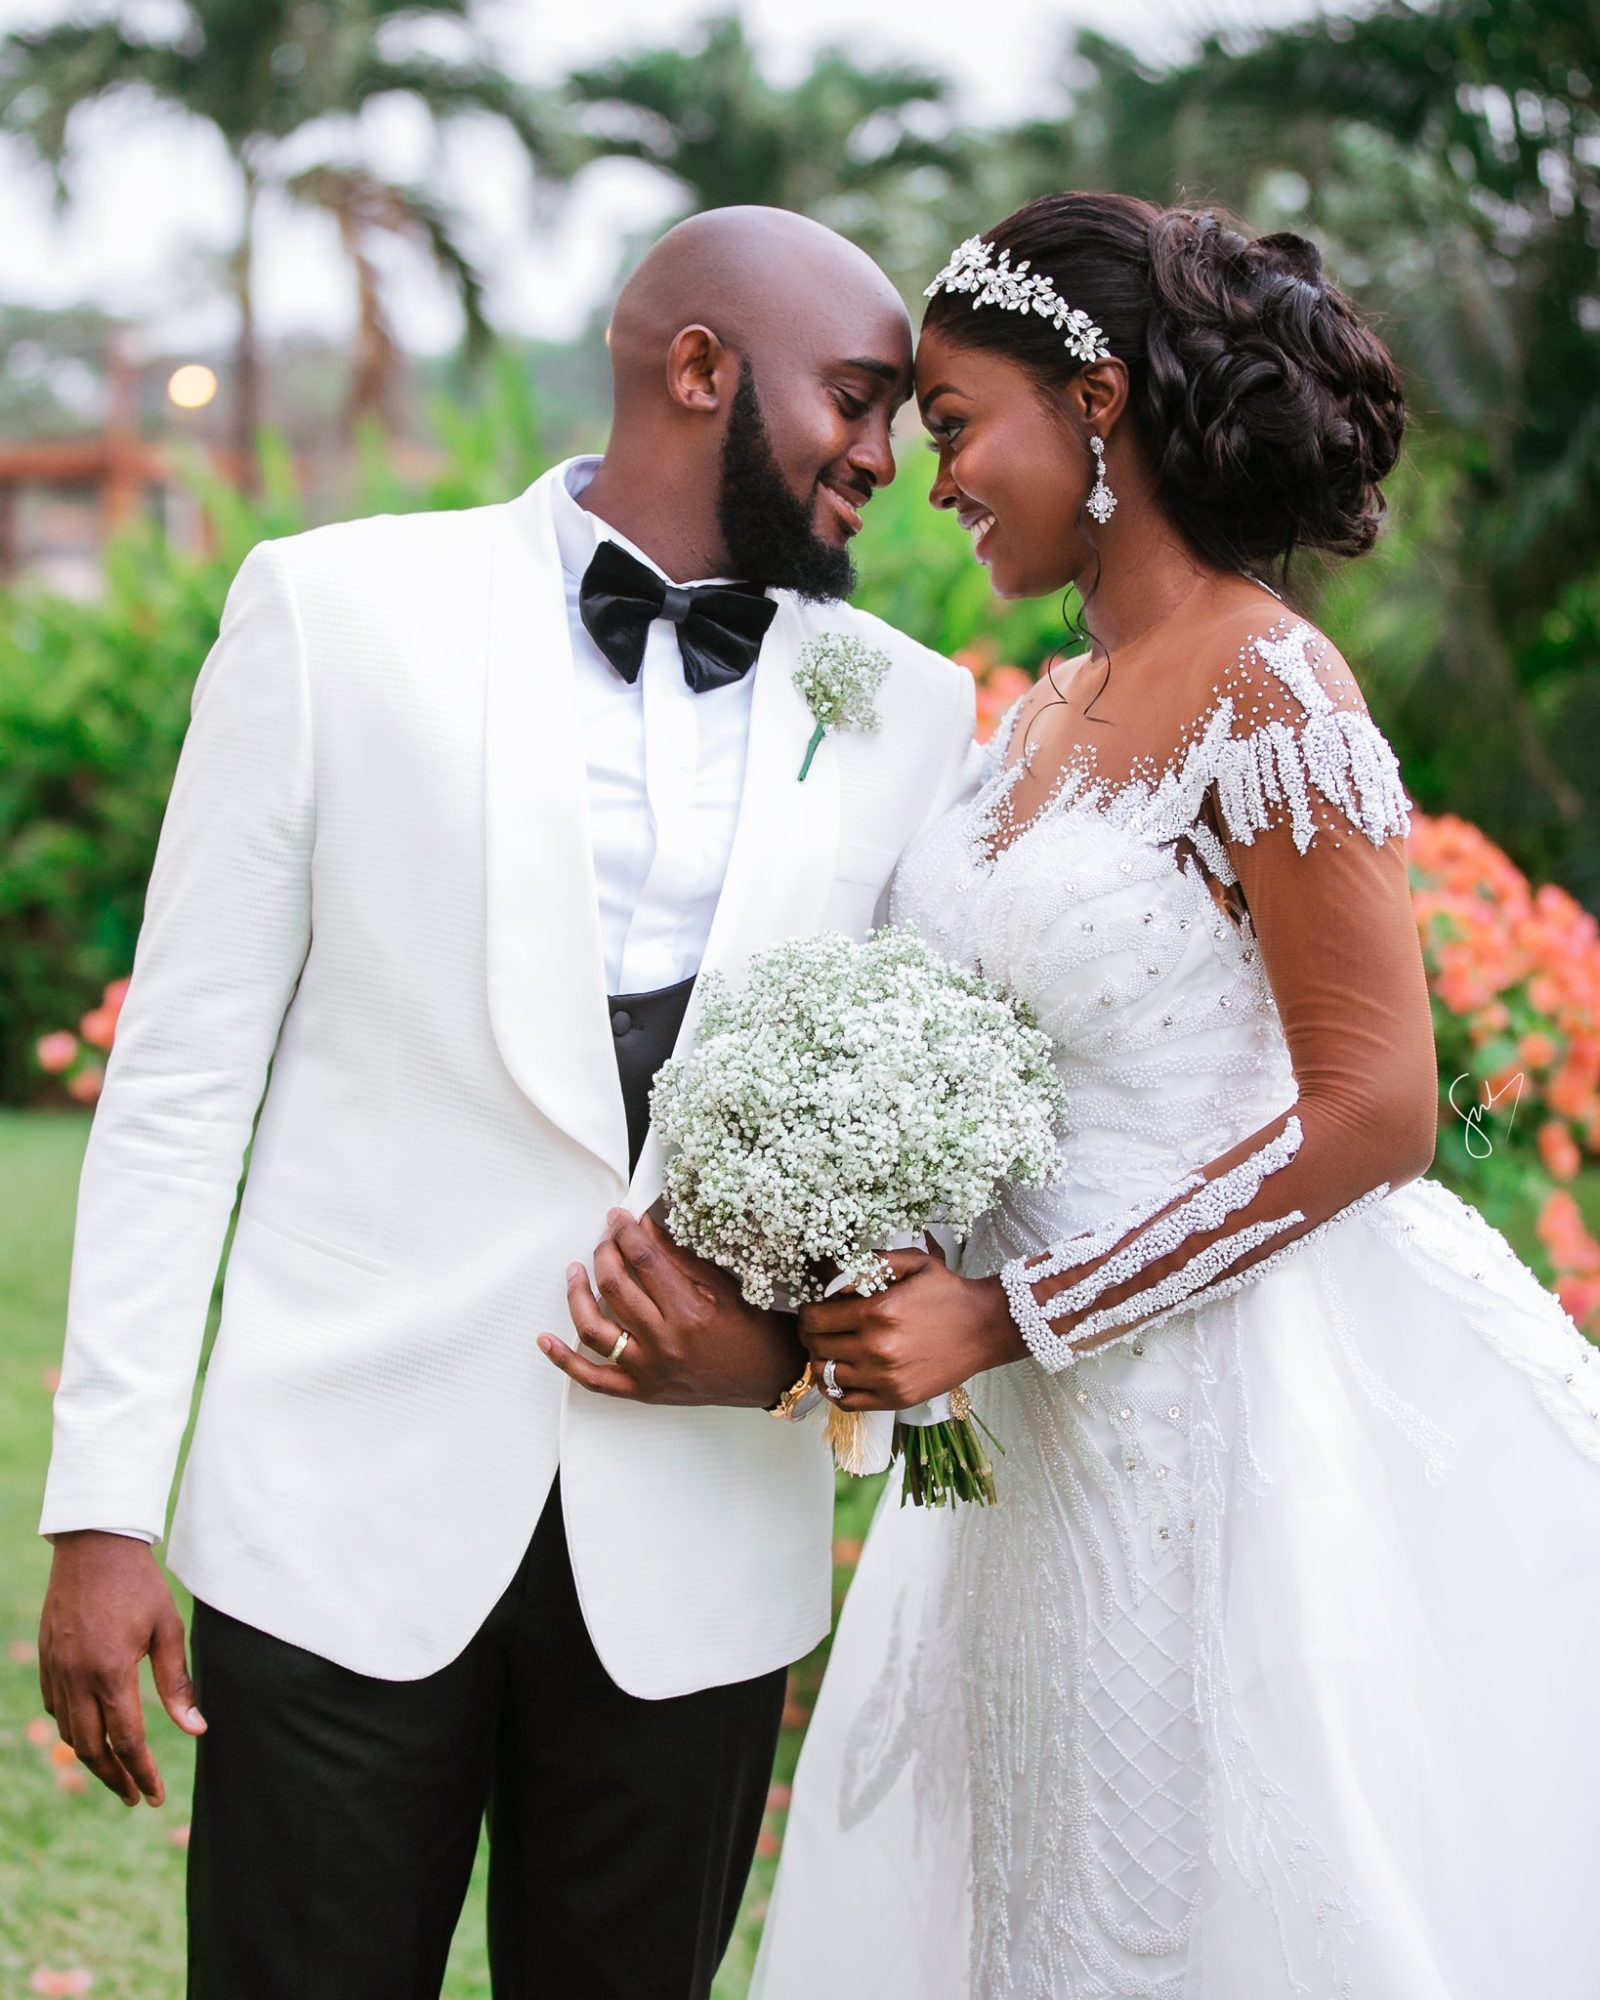 Amanda & Sydney's Outdoor White Wedding In Ghana Is GOALS